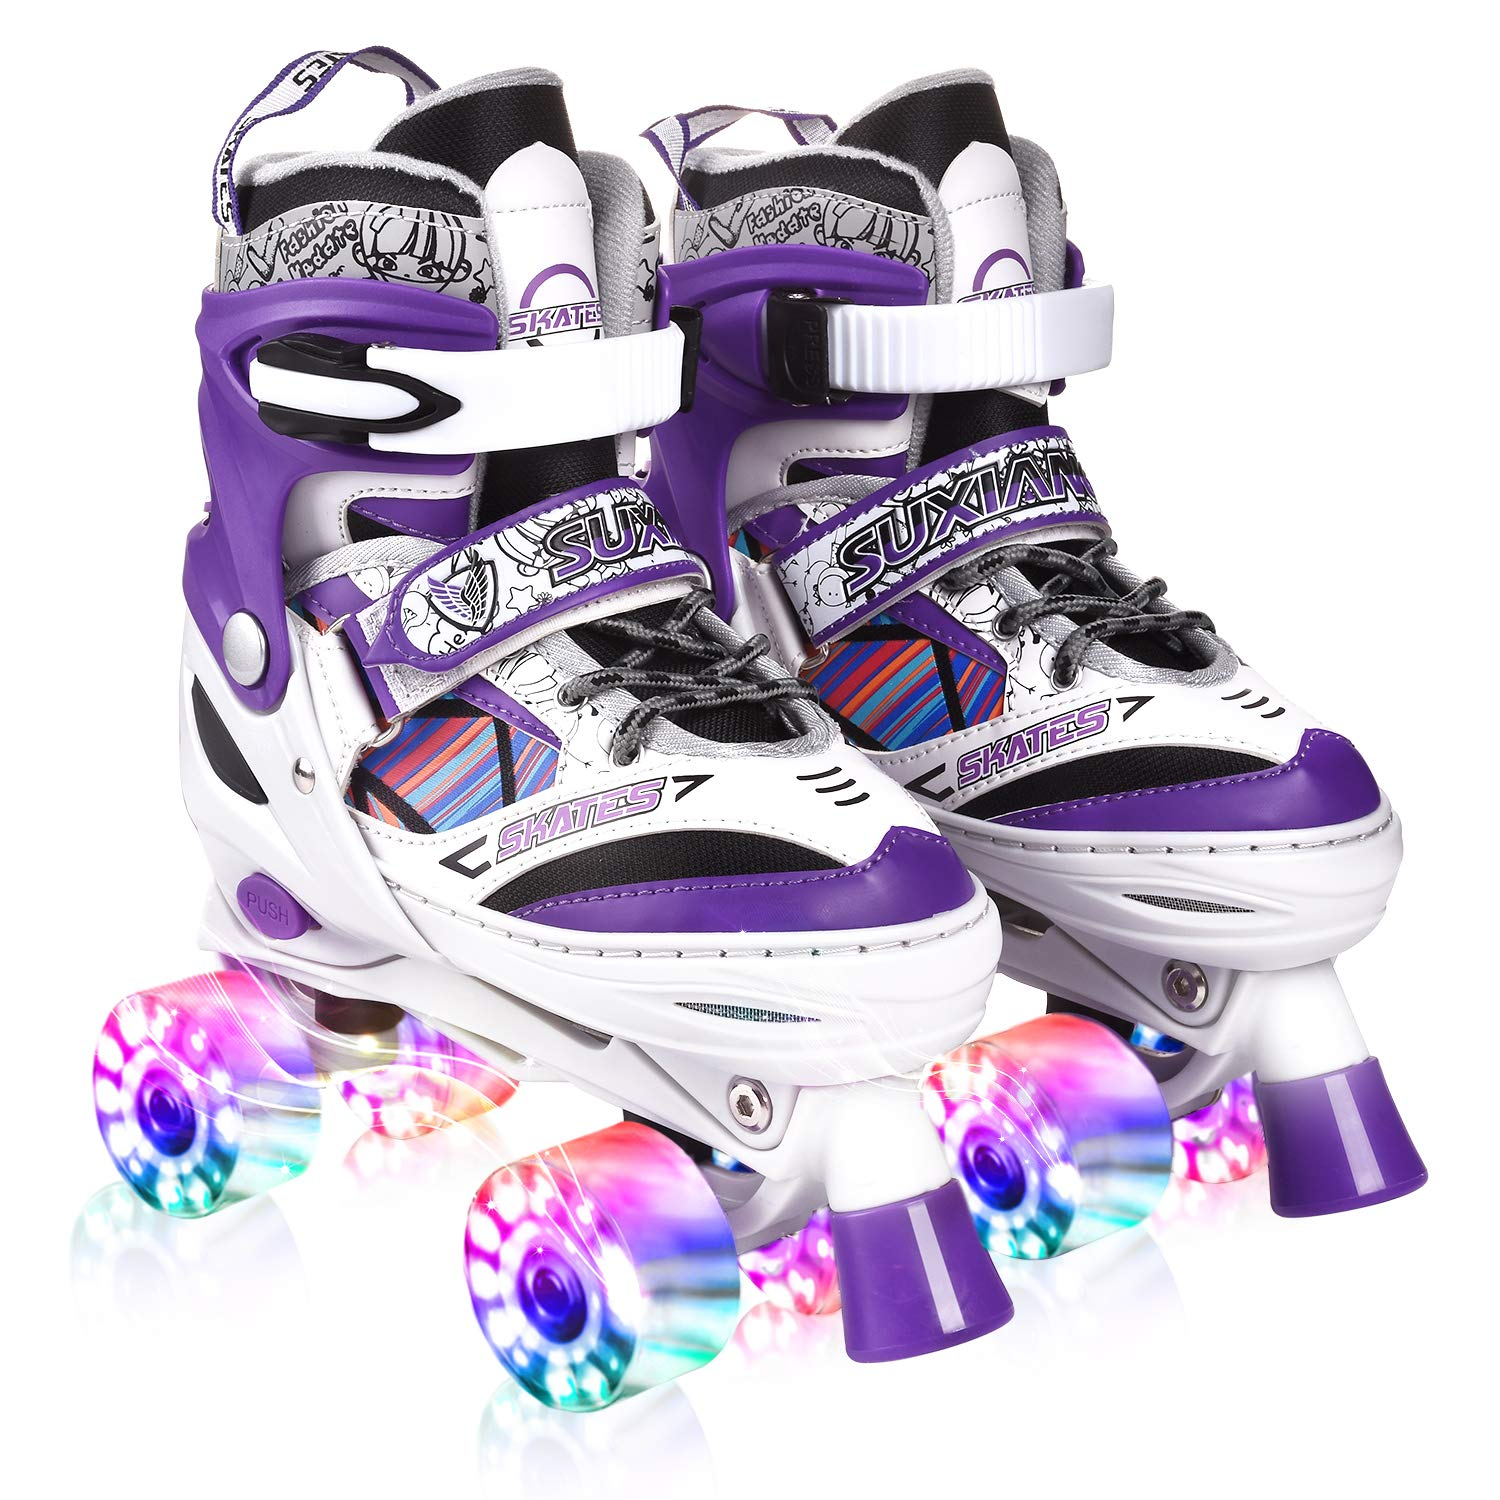 Kuxuan Saya Roller Skates Adjustable for Kids,with All Wheels Light up,Fun Illuminating for Girls and Ladies (Purple, Small(11-1US))